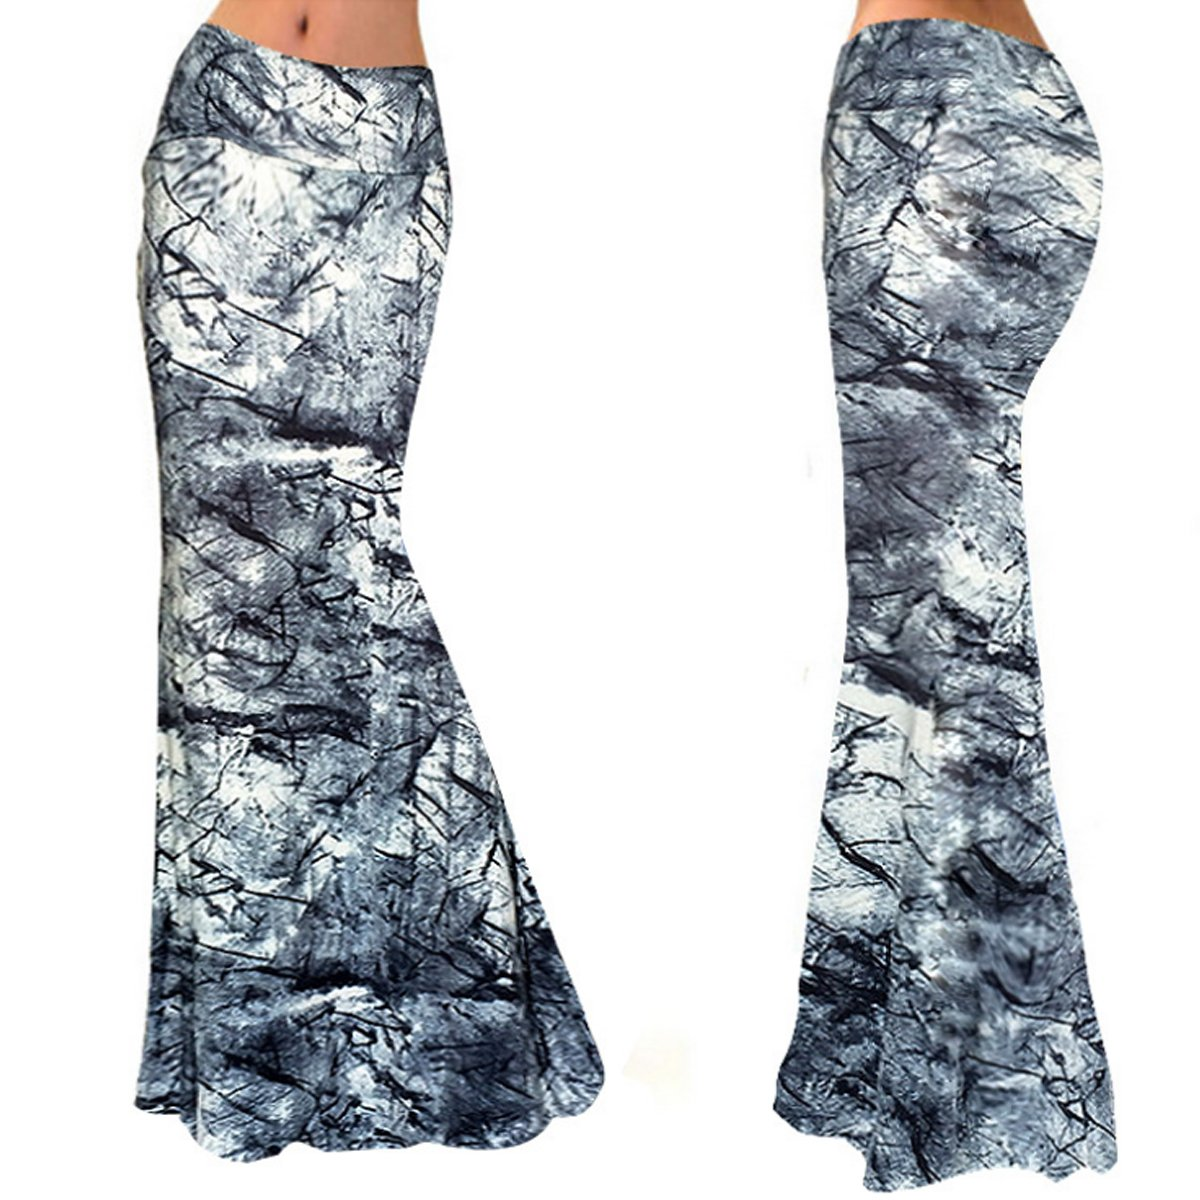 Aisa Womens Multicolored Printed High Waist Maxi Skirt New Fold Over Beach Long Skirt Dress Size Large by Aisa (Image #7)